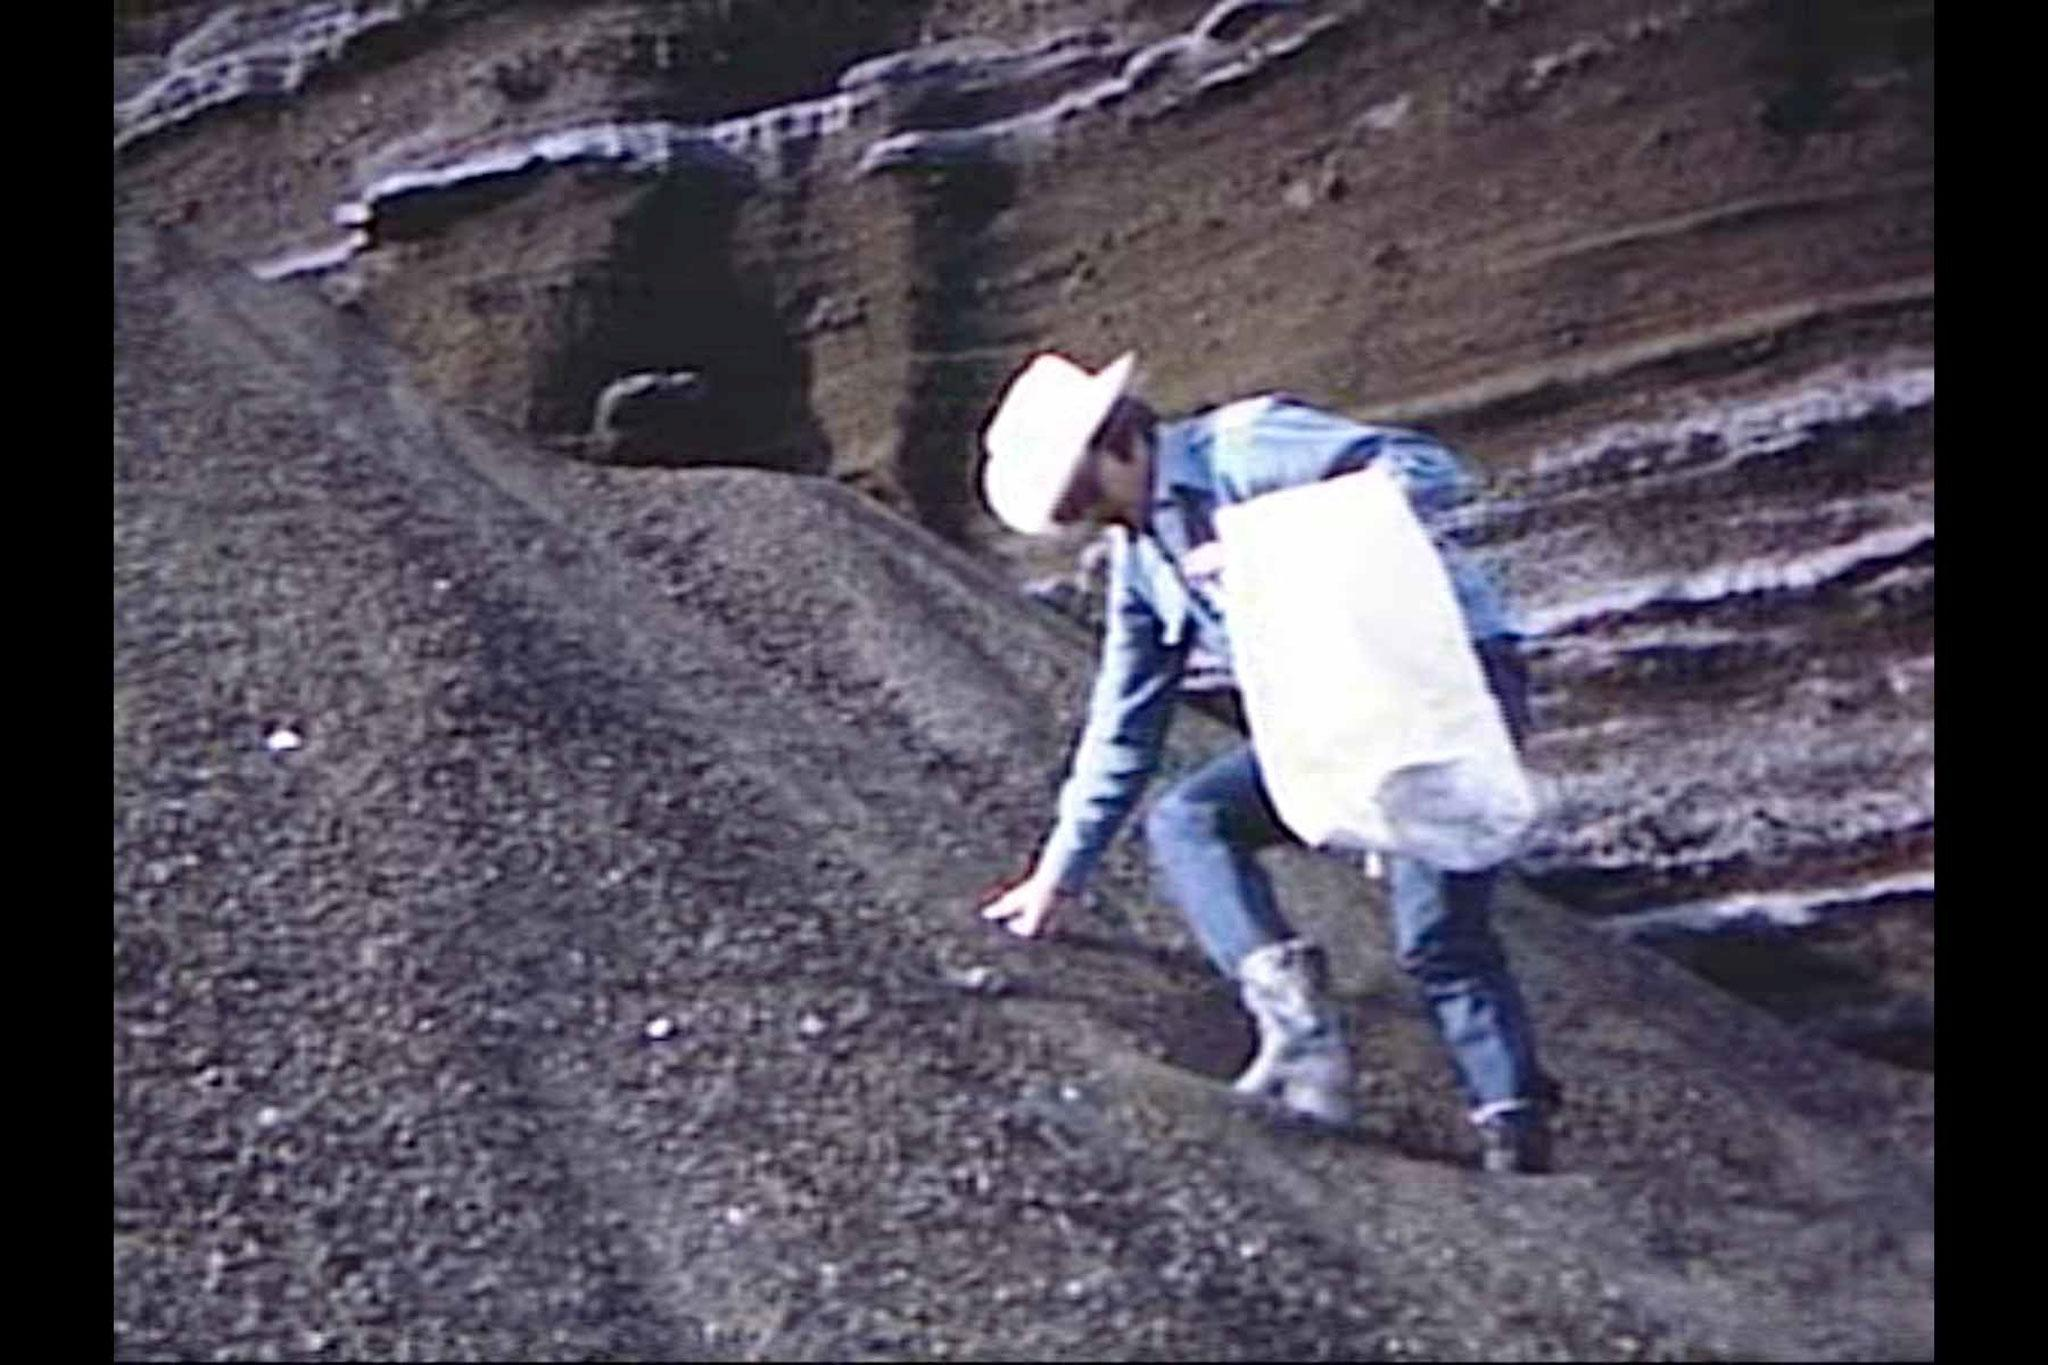 A man wearing a cowboy hat descending a steep slope of gravel